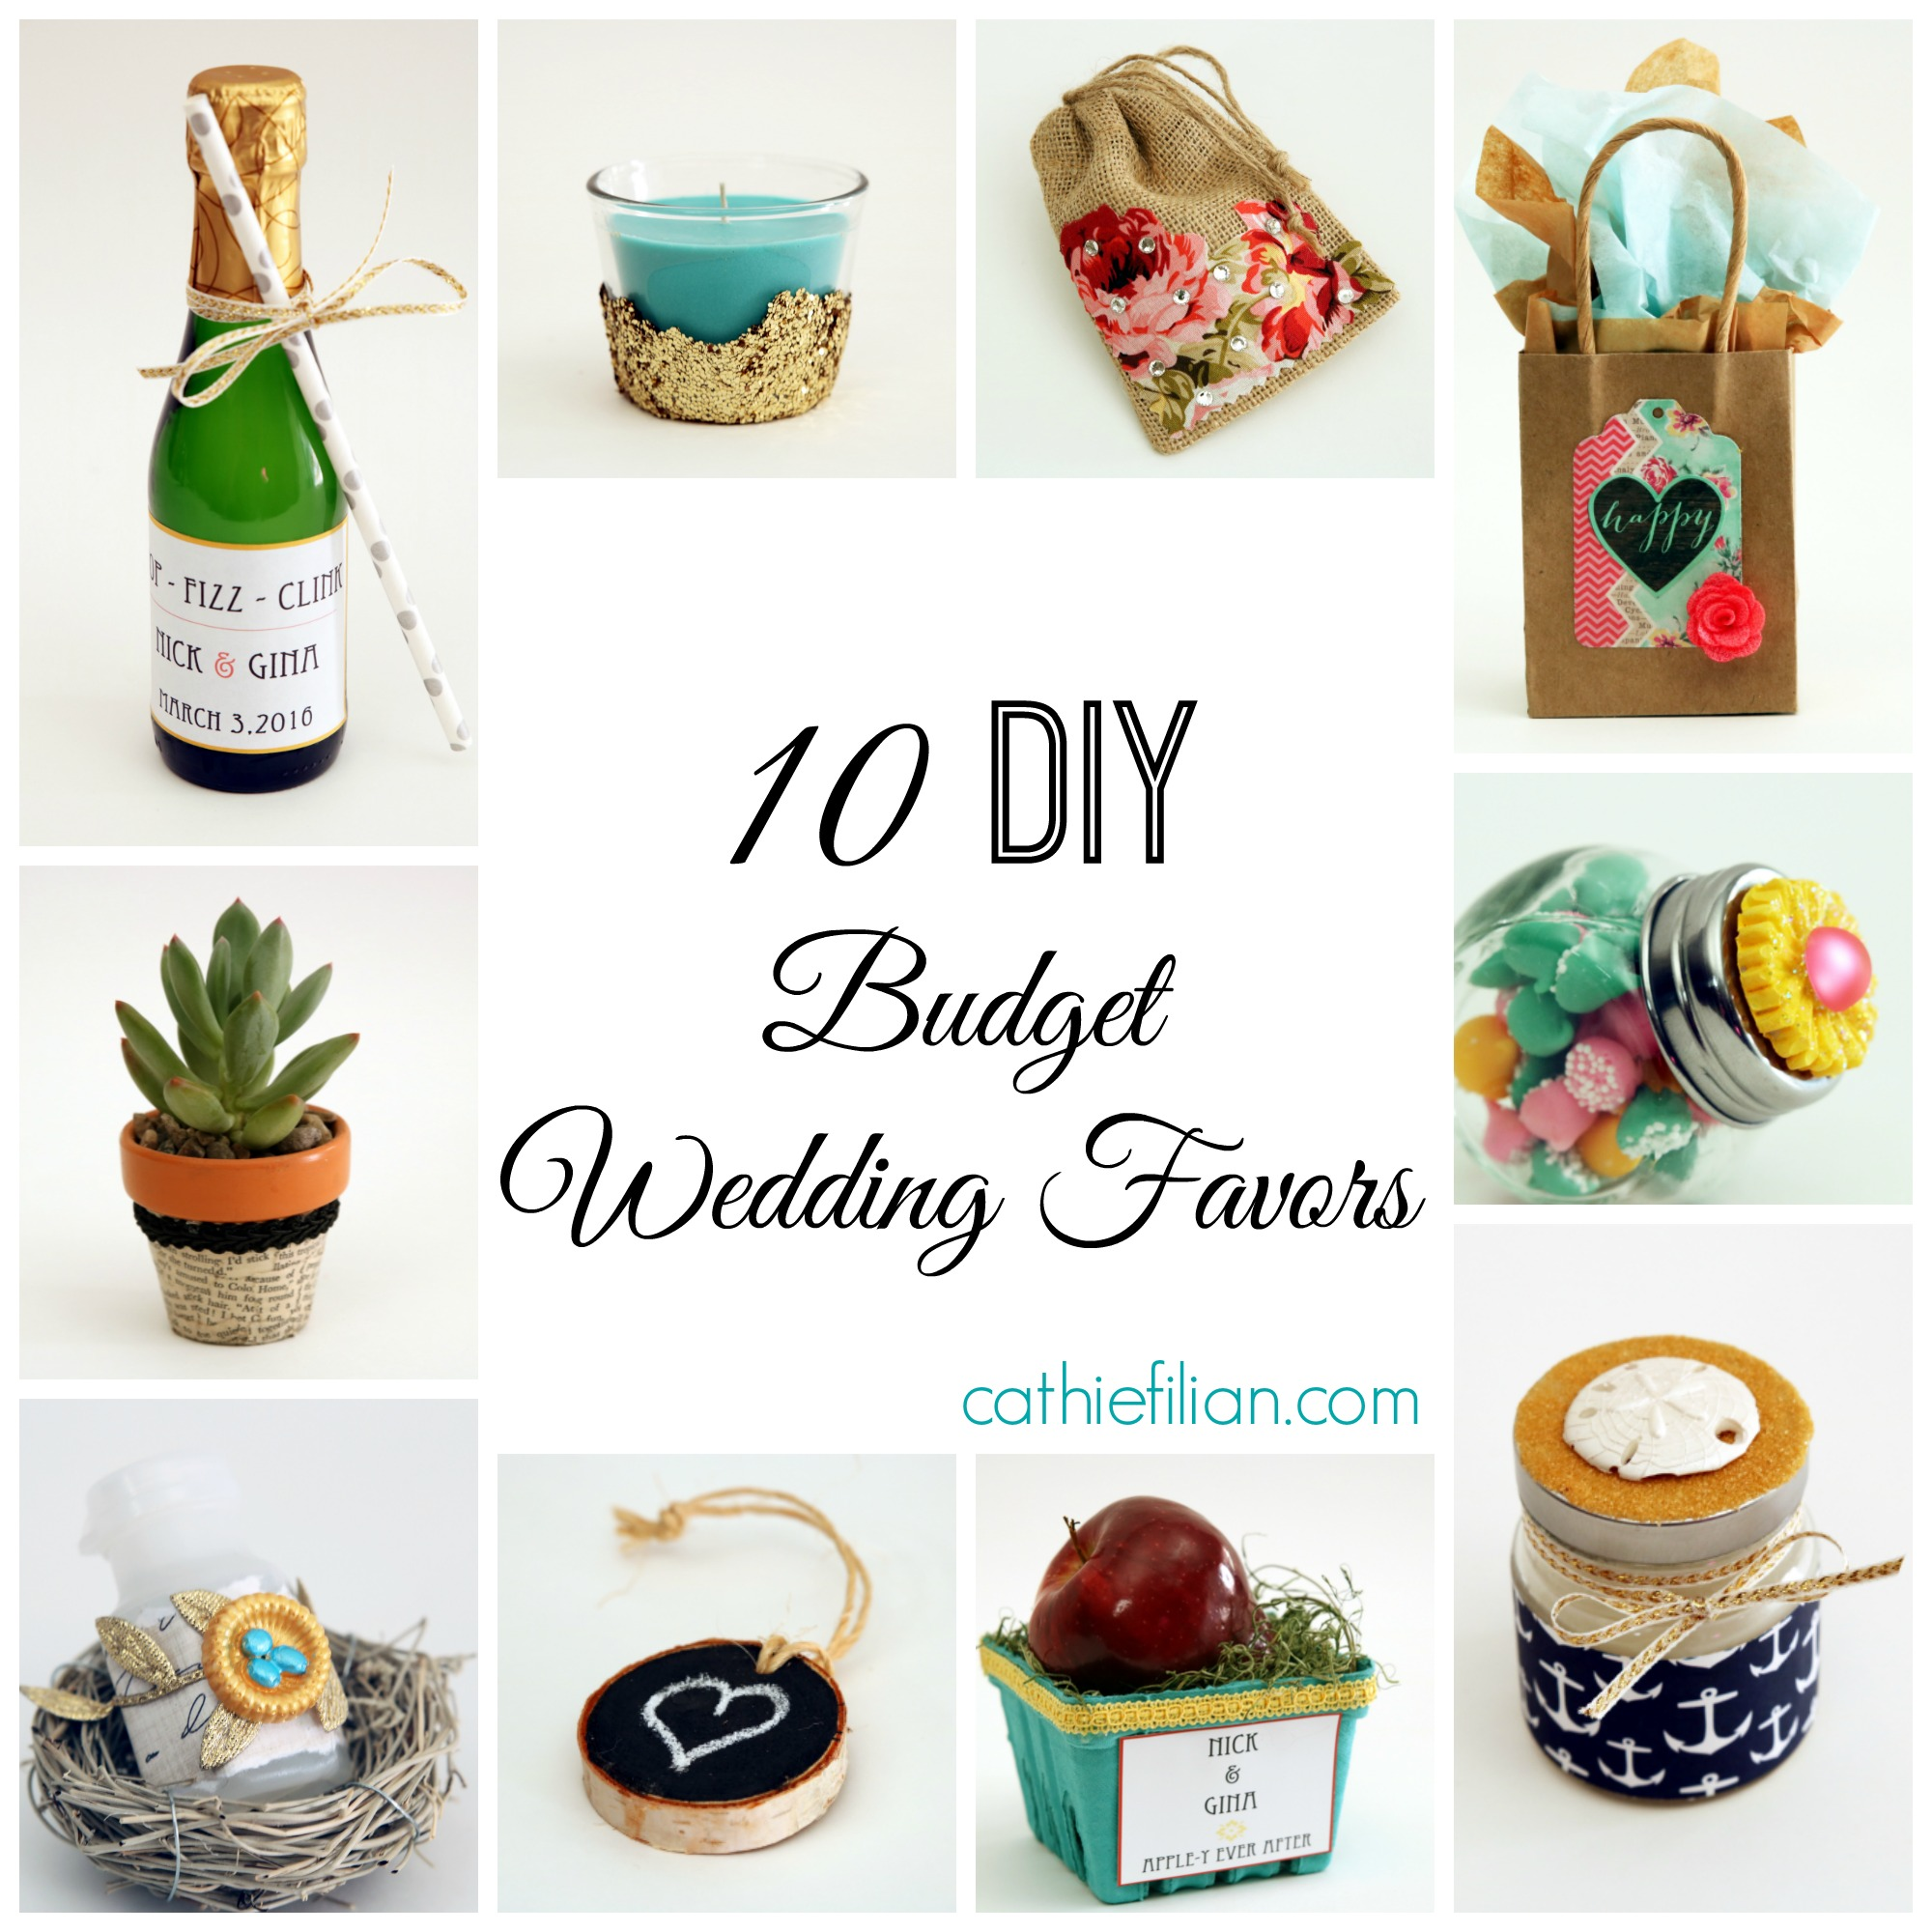 10 DIY Budget Wedding Favor Ideas - Cathie Filian & Steve Piacenza